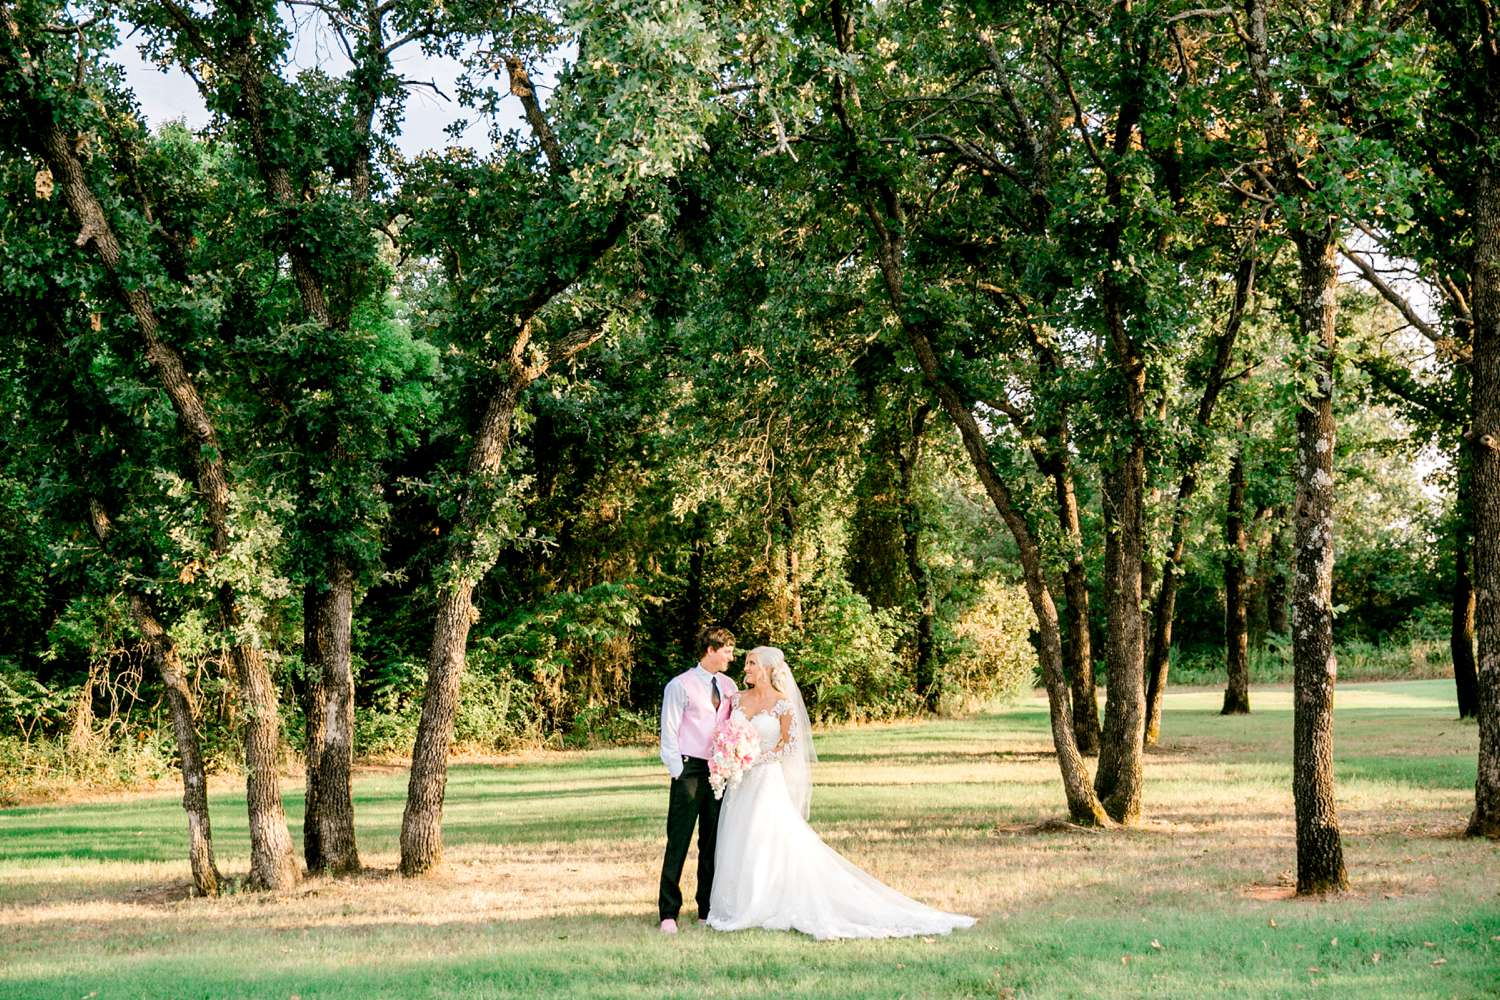 JESSICA+LYLE+NEEL+THE_SPRINGS_EVENTS_WEDDING_OKLAHOMA_ALLEEJ_PHOTOGRAPHER_0092.jpg